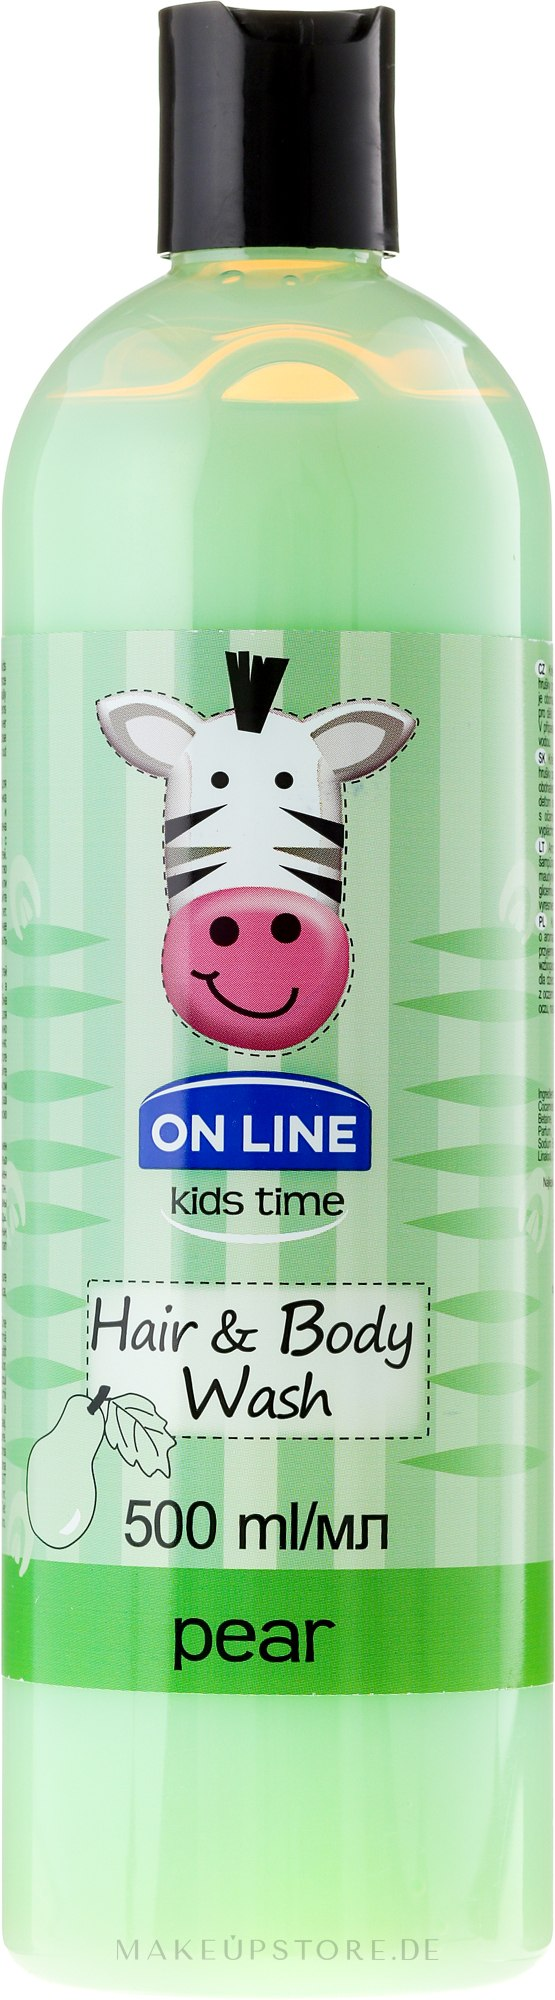 "On Line Kids Time Hair & Body Wash Pear - Shampoo & Duschgel für Kinder ""Birne"" — Bild 500 ml"